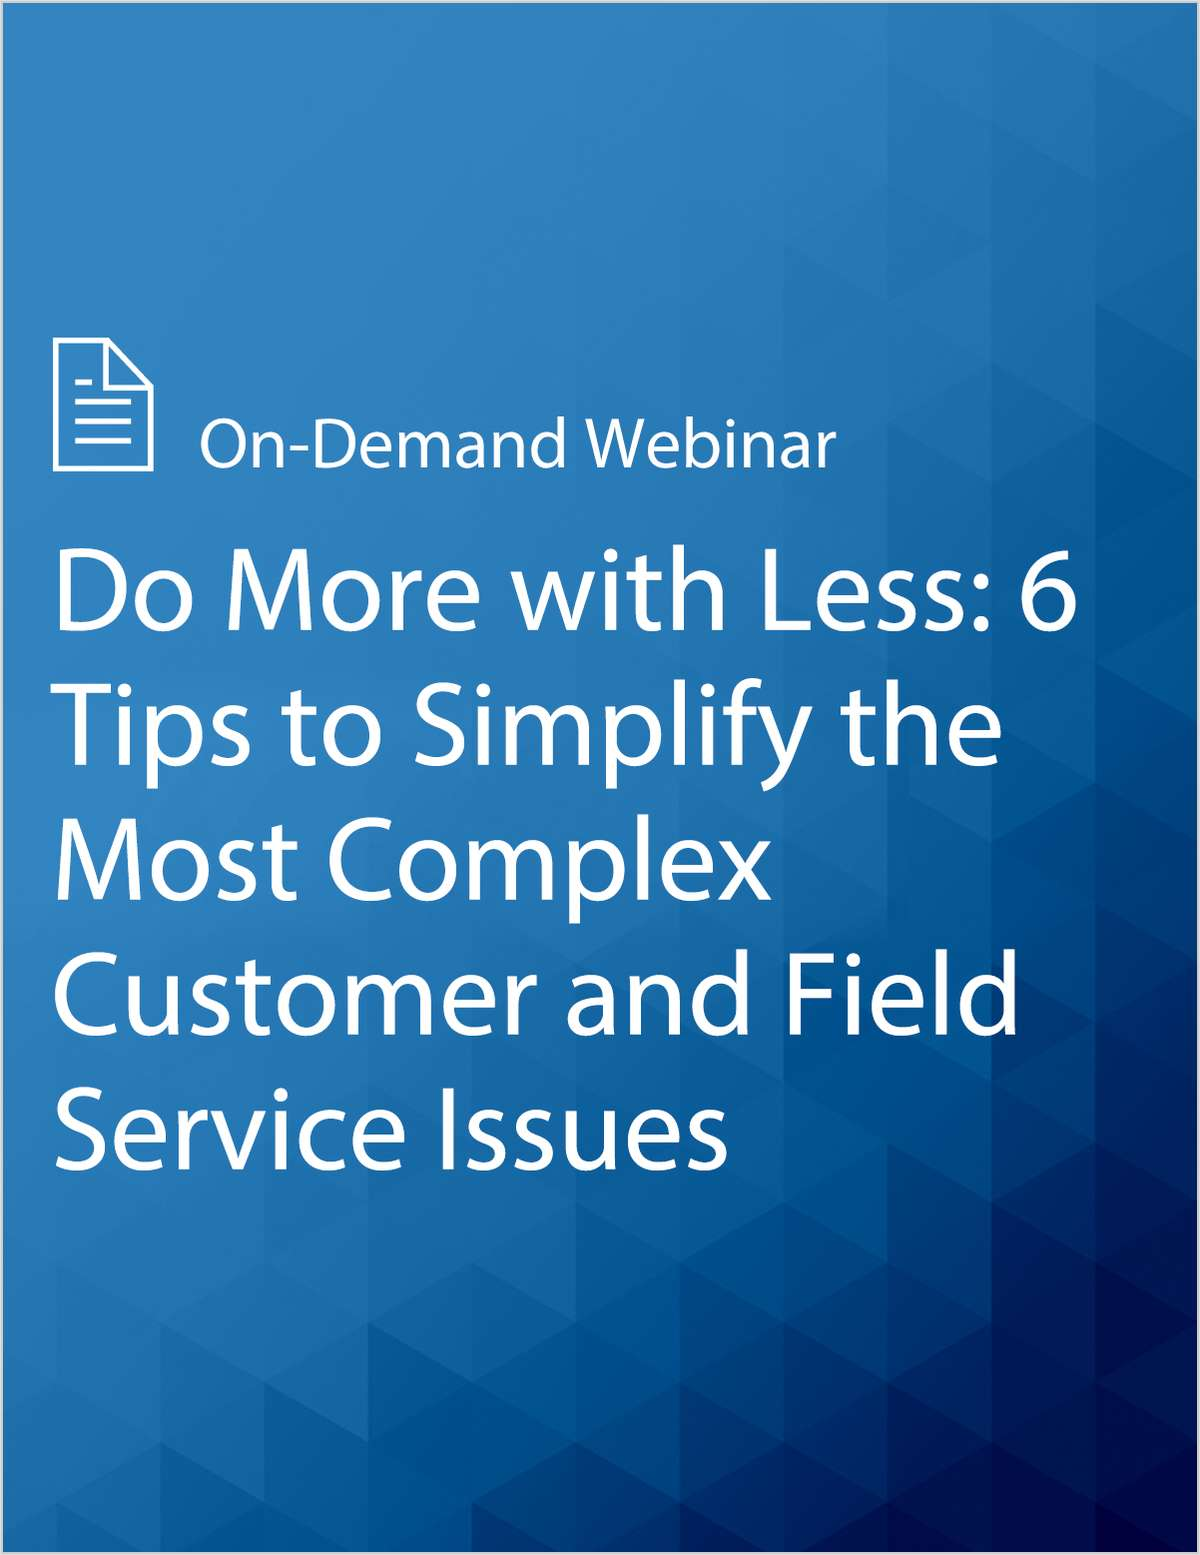 Do More with Less: 6 Tips to Simplify the Most Complex Customer and Field Service Issues